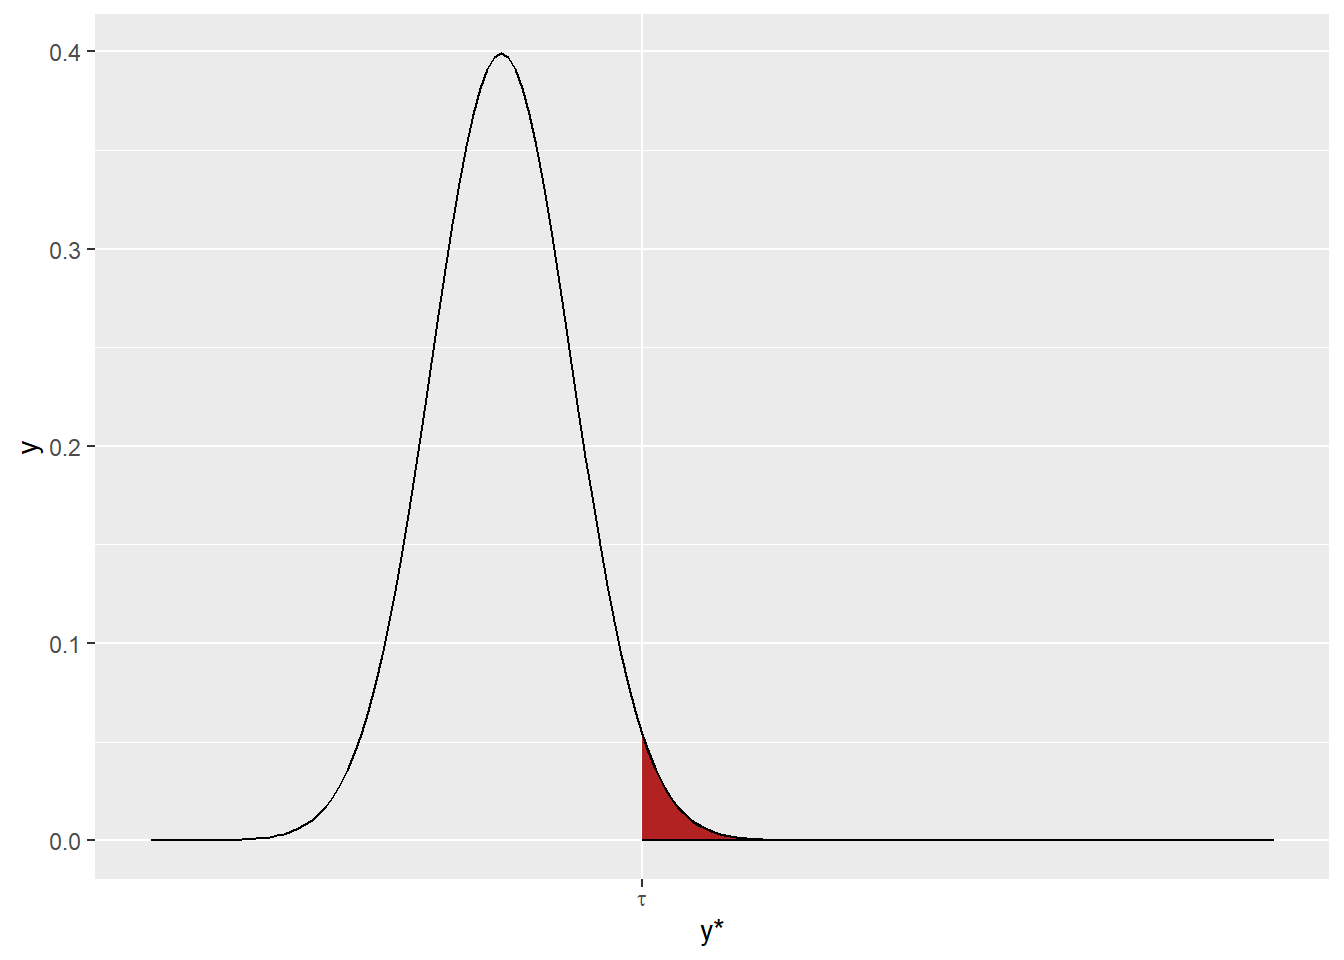 Area under the distribution that exceeds the threshold